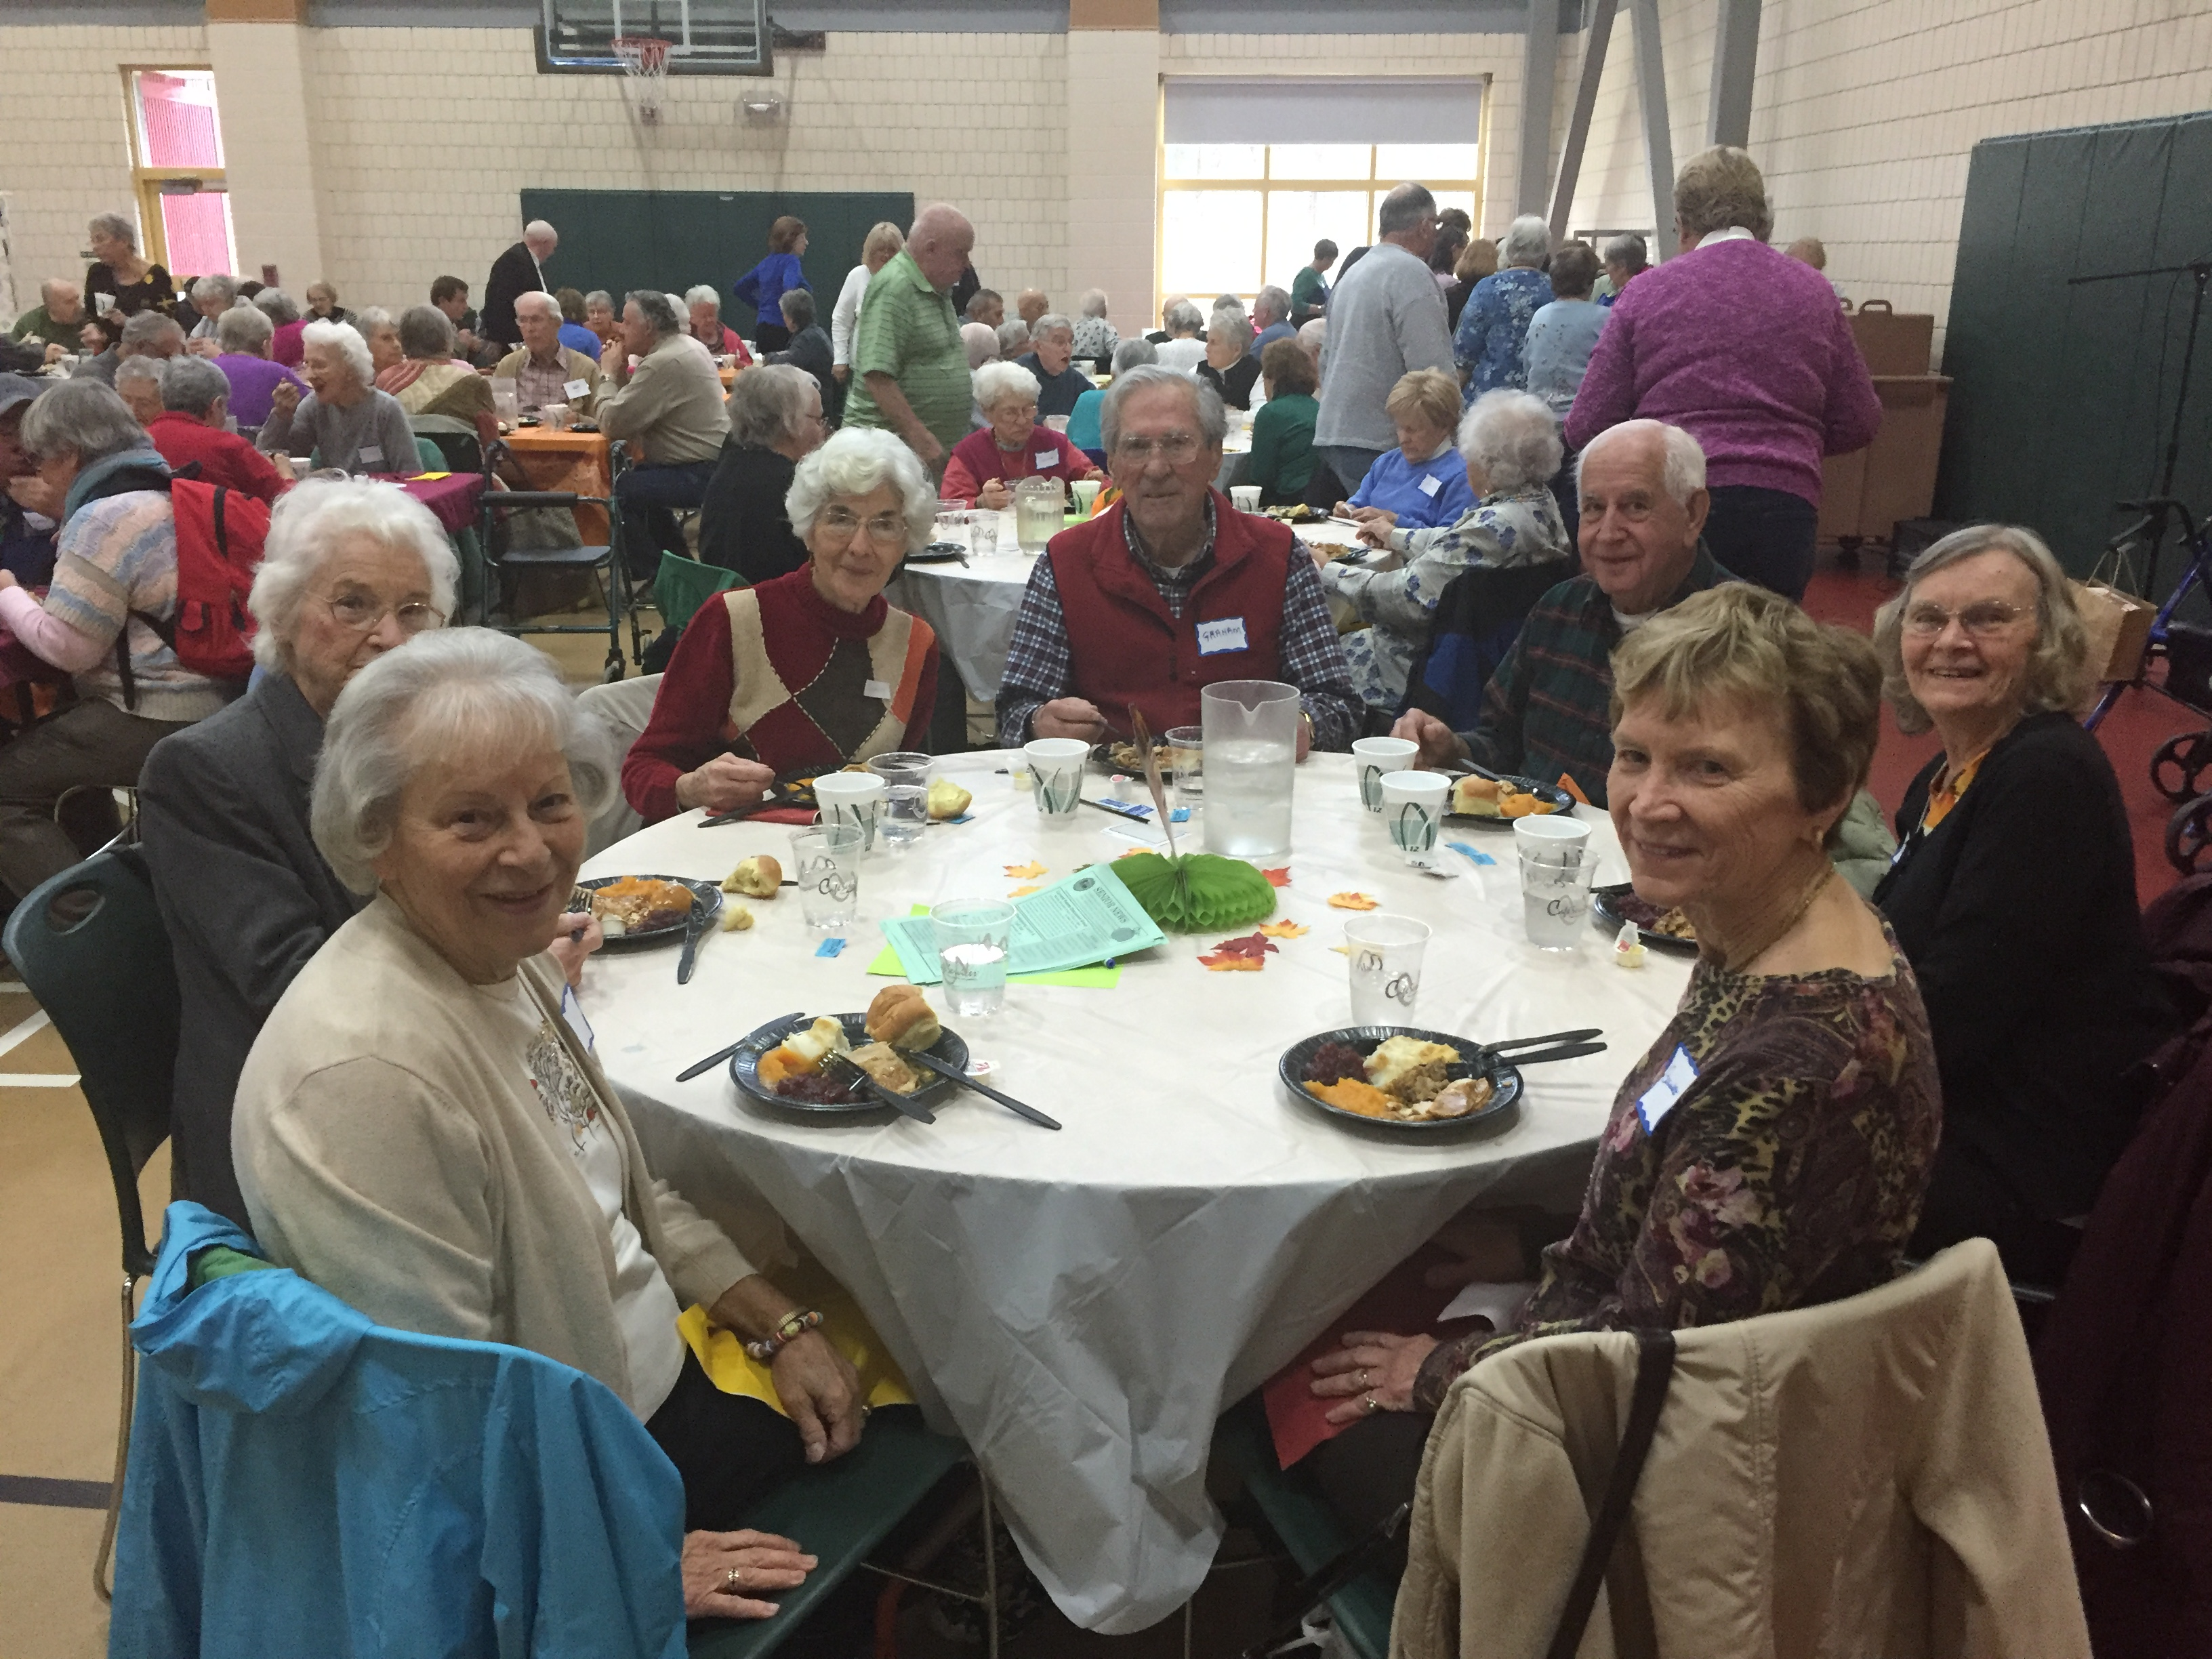 Thanksgiving luncheon at the senior center